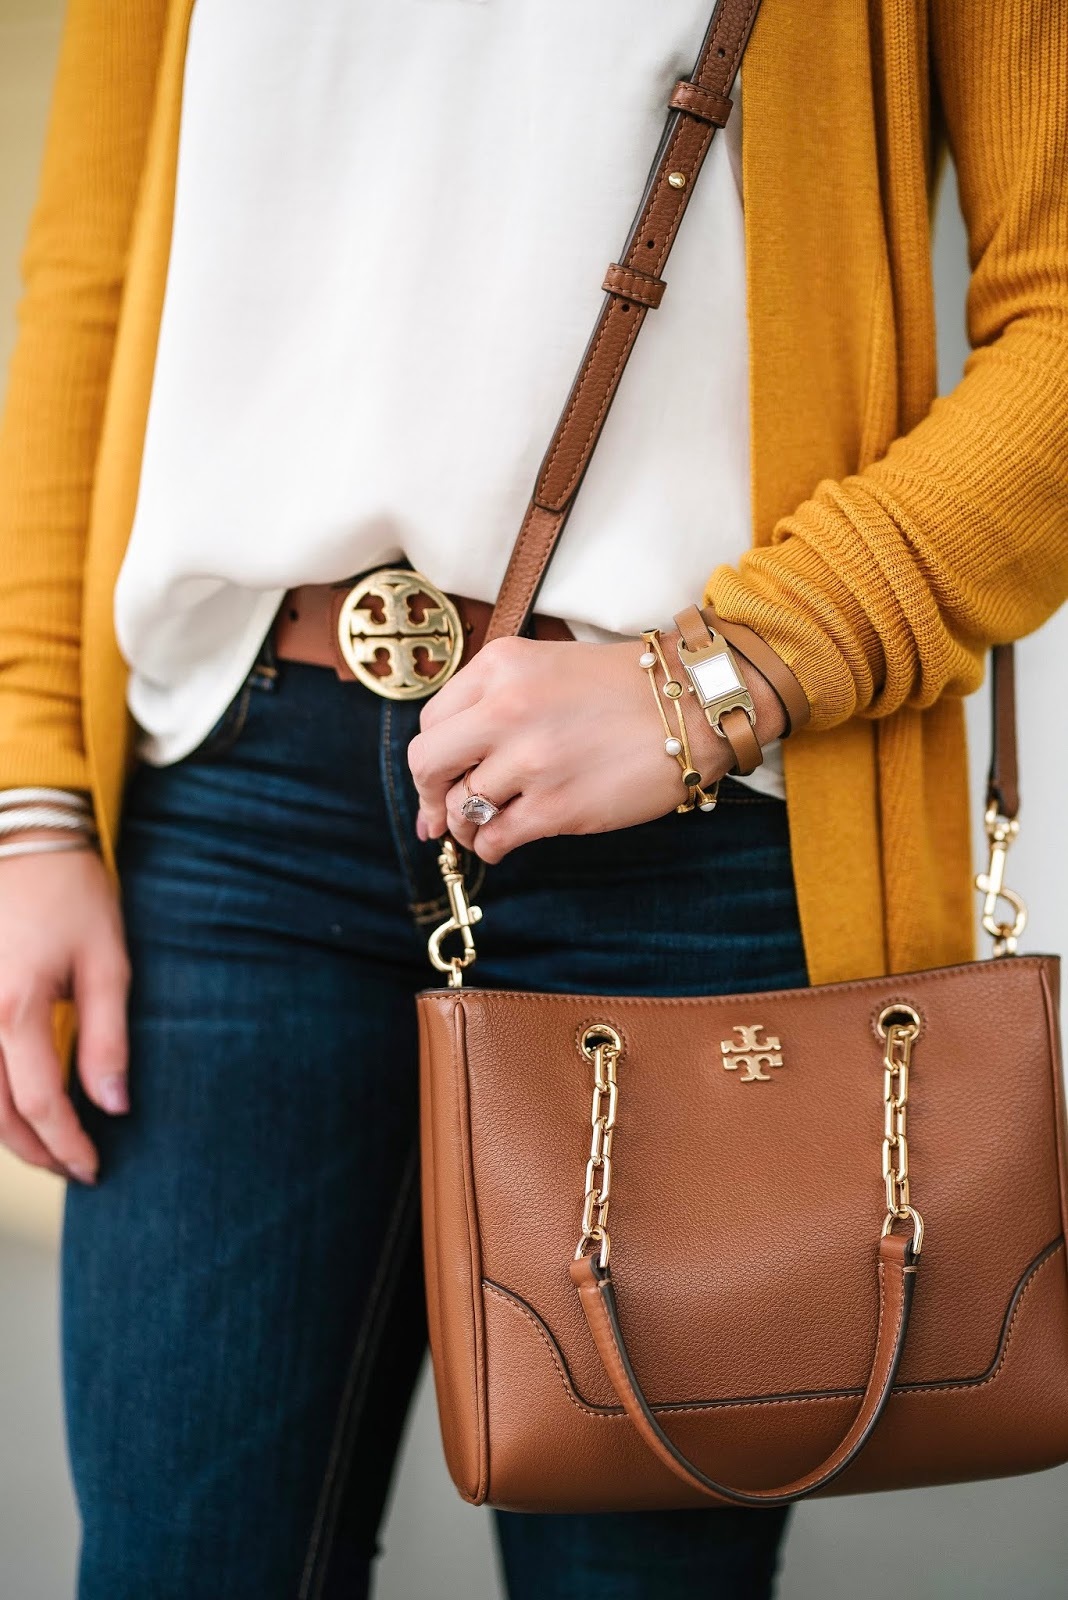 Tory Burch Accessories - Something Delightful Blog @racheltimmerman